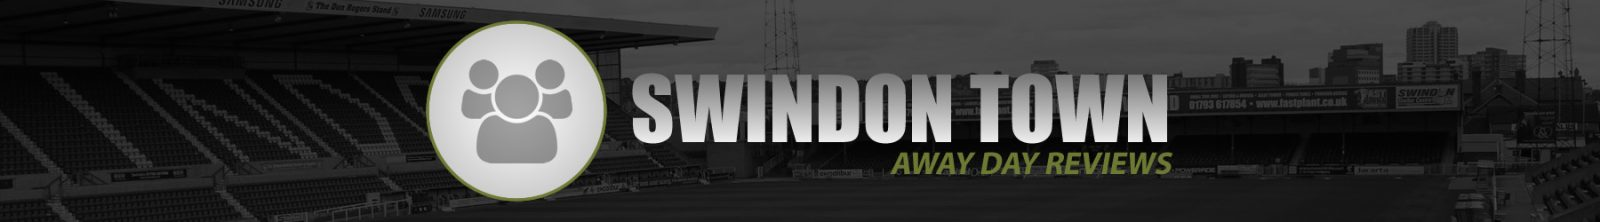 Review Swindon Town